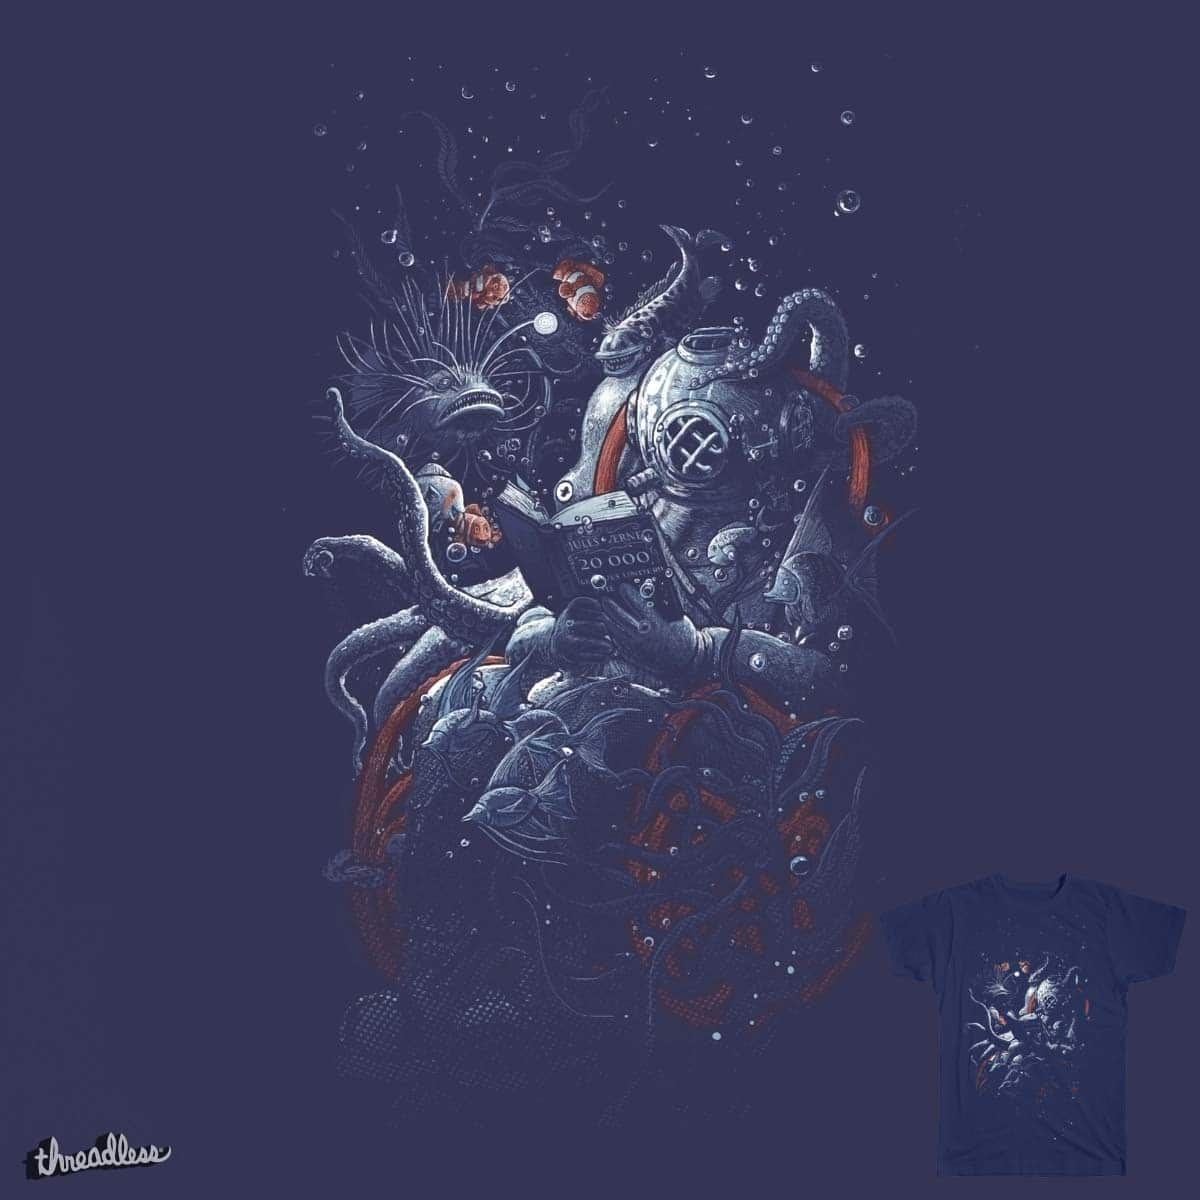 i'd like to be under the sea by choubaka360 on Threadless